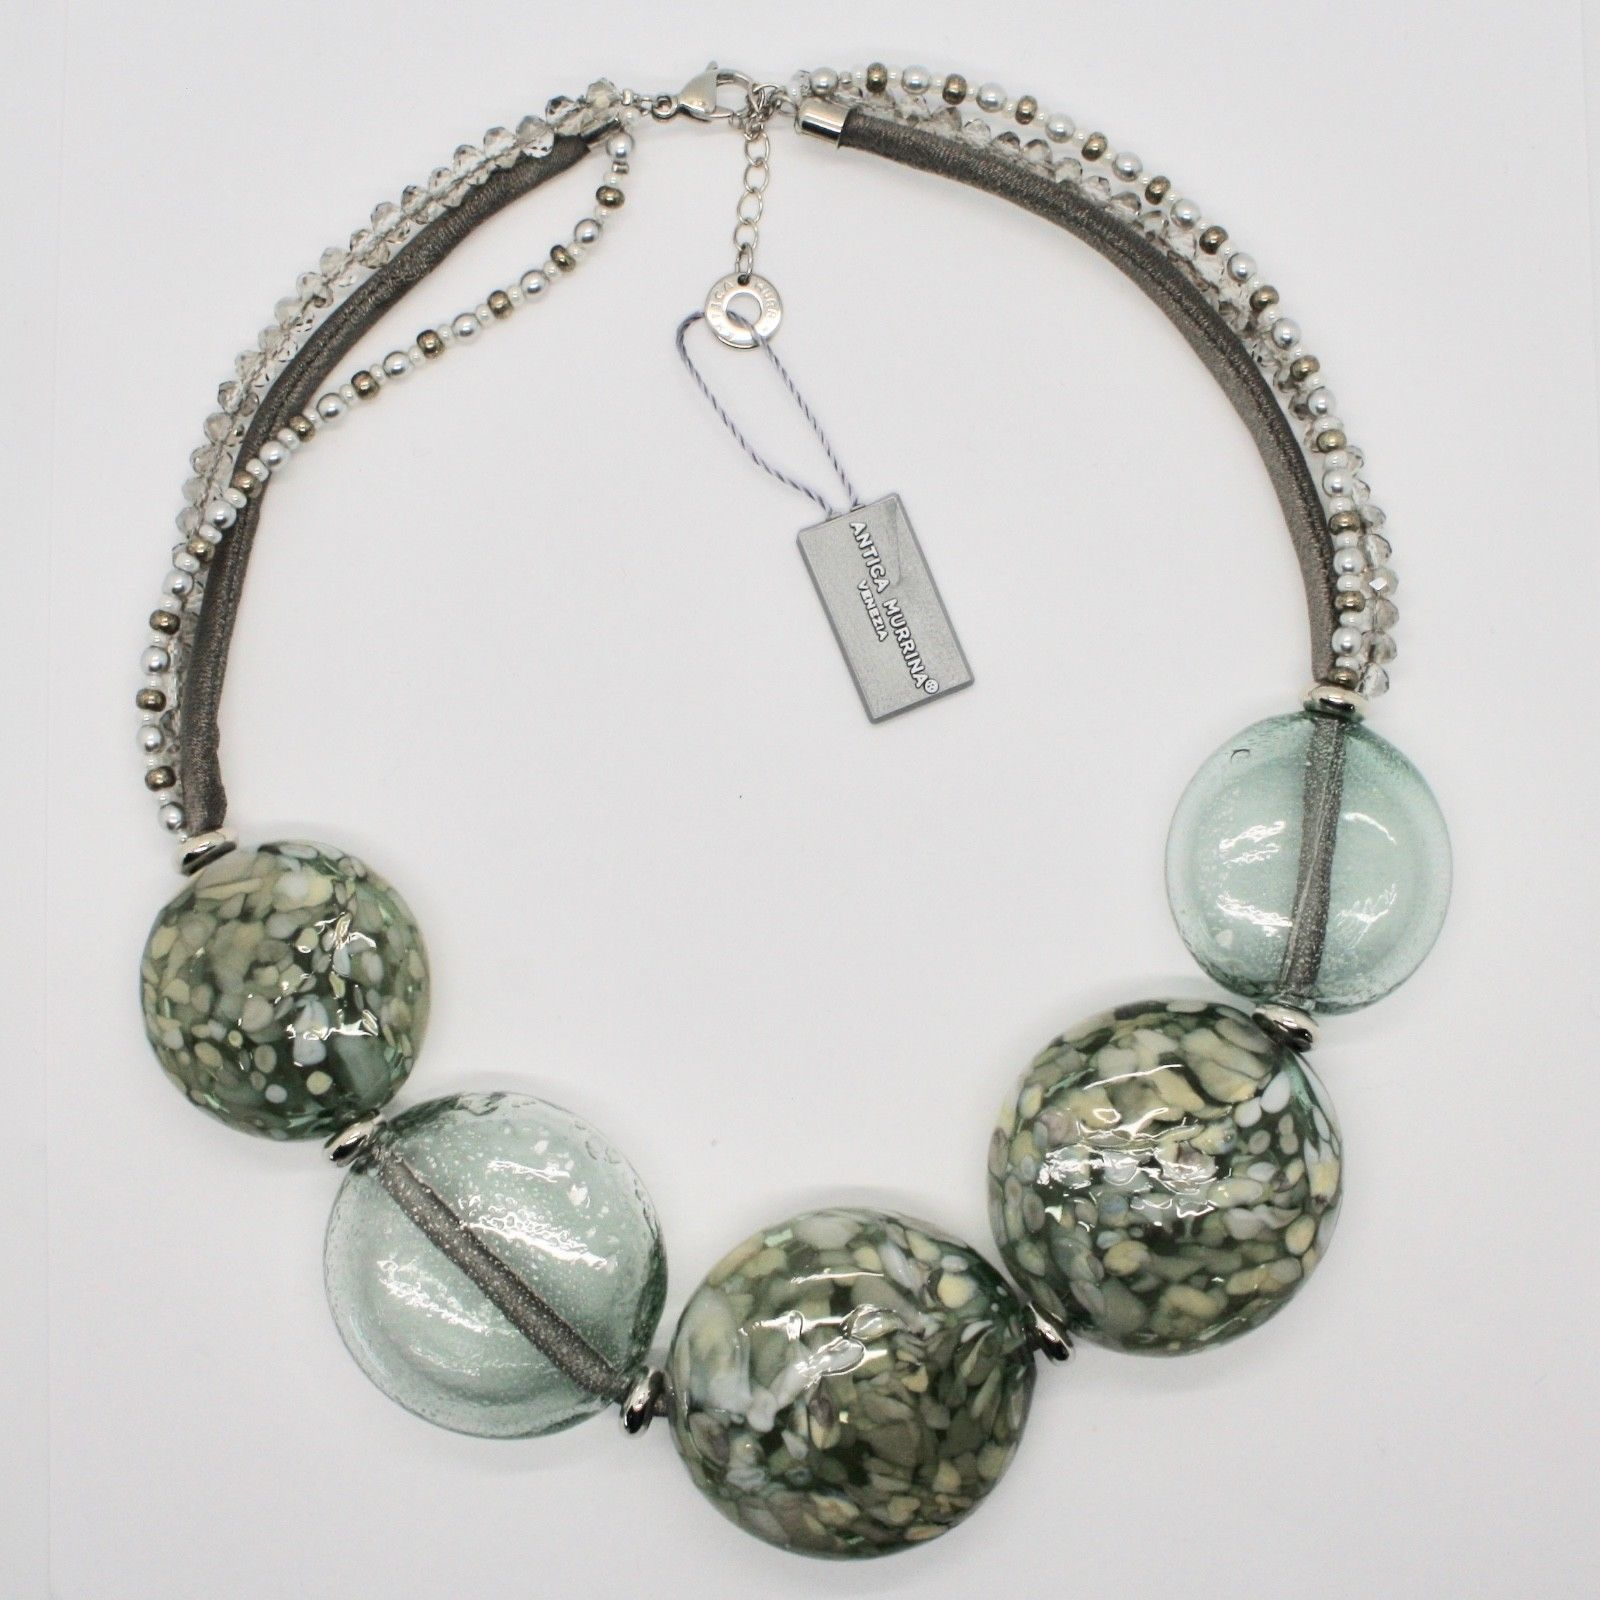 ANTICA MURRINA VENEZIA NECKLACE WITH BIG DISC OF MURANO GLASS GRAY COA75A34